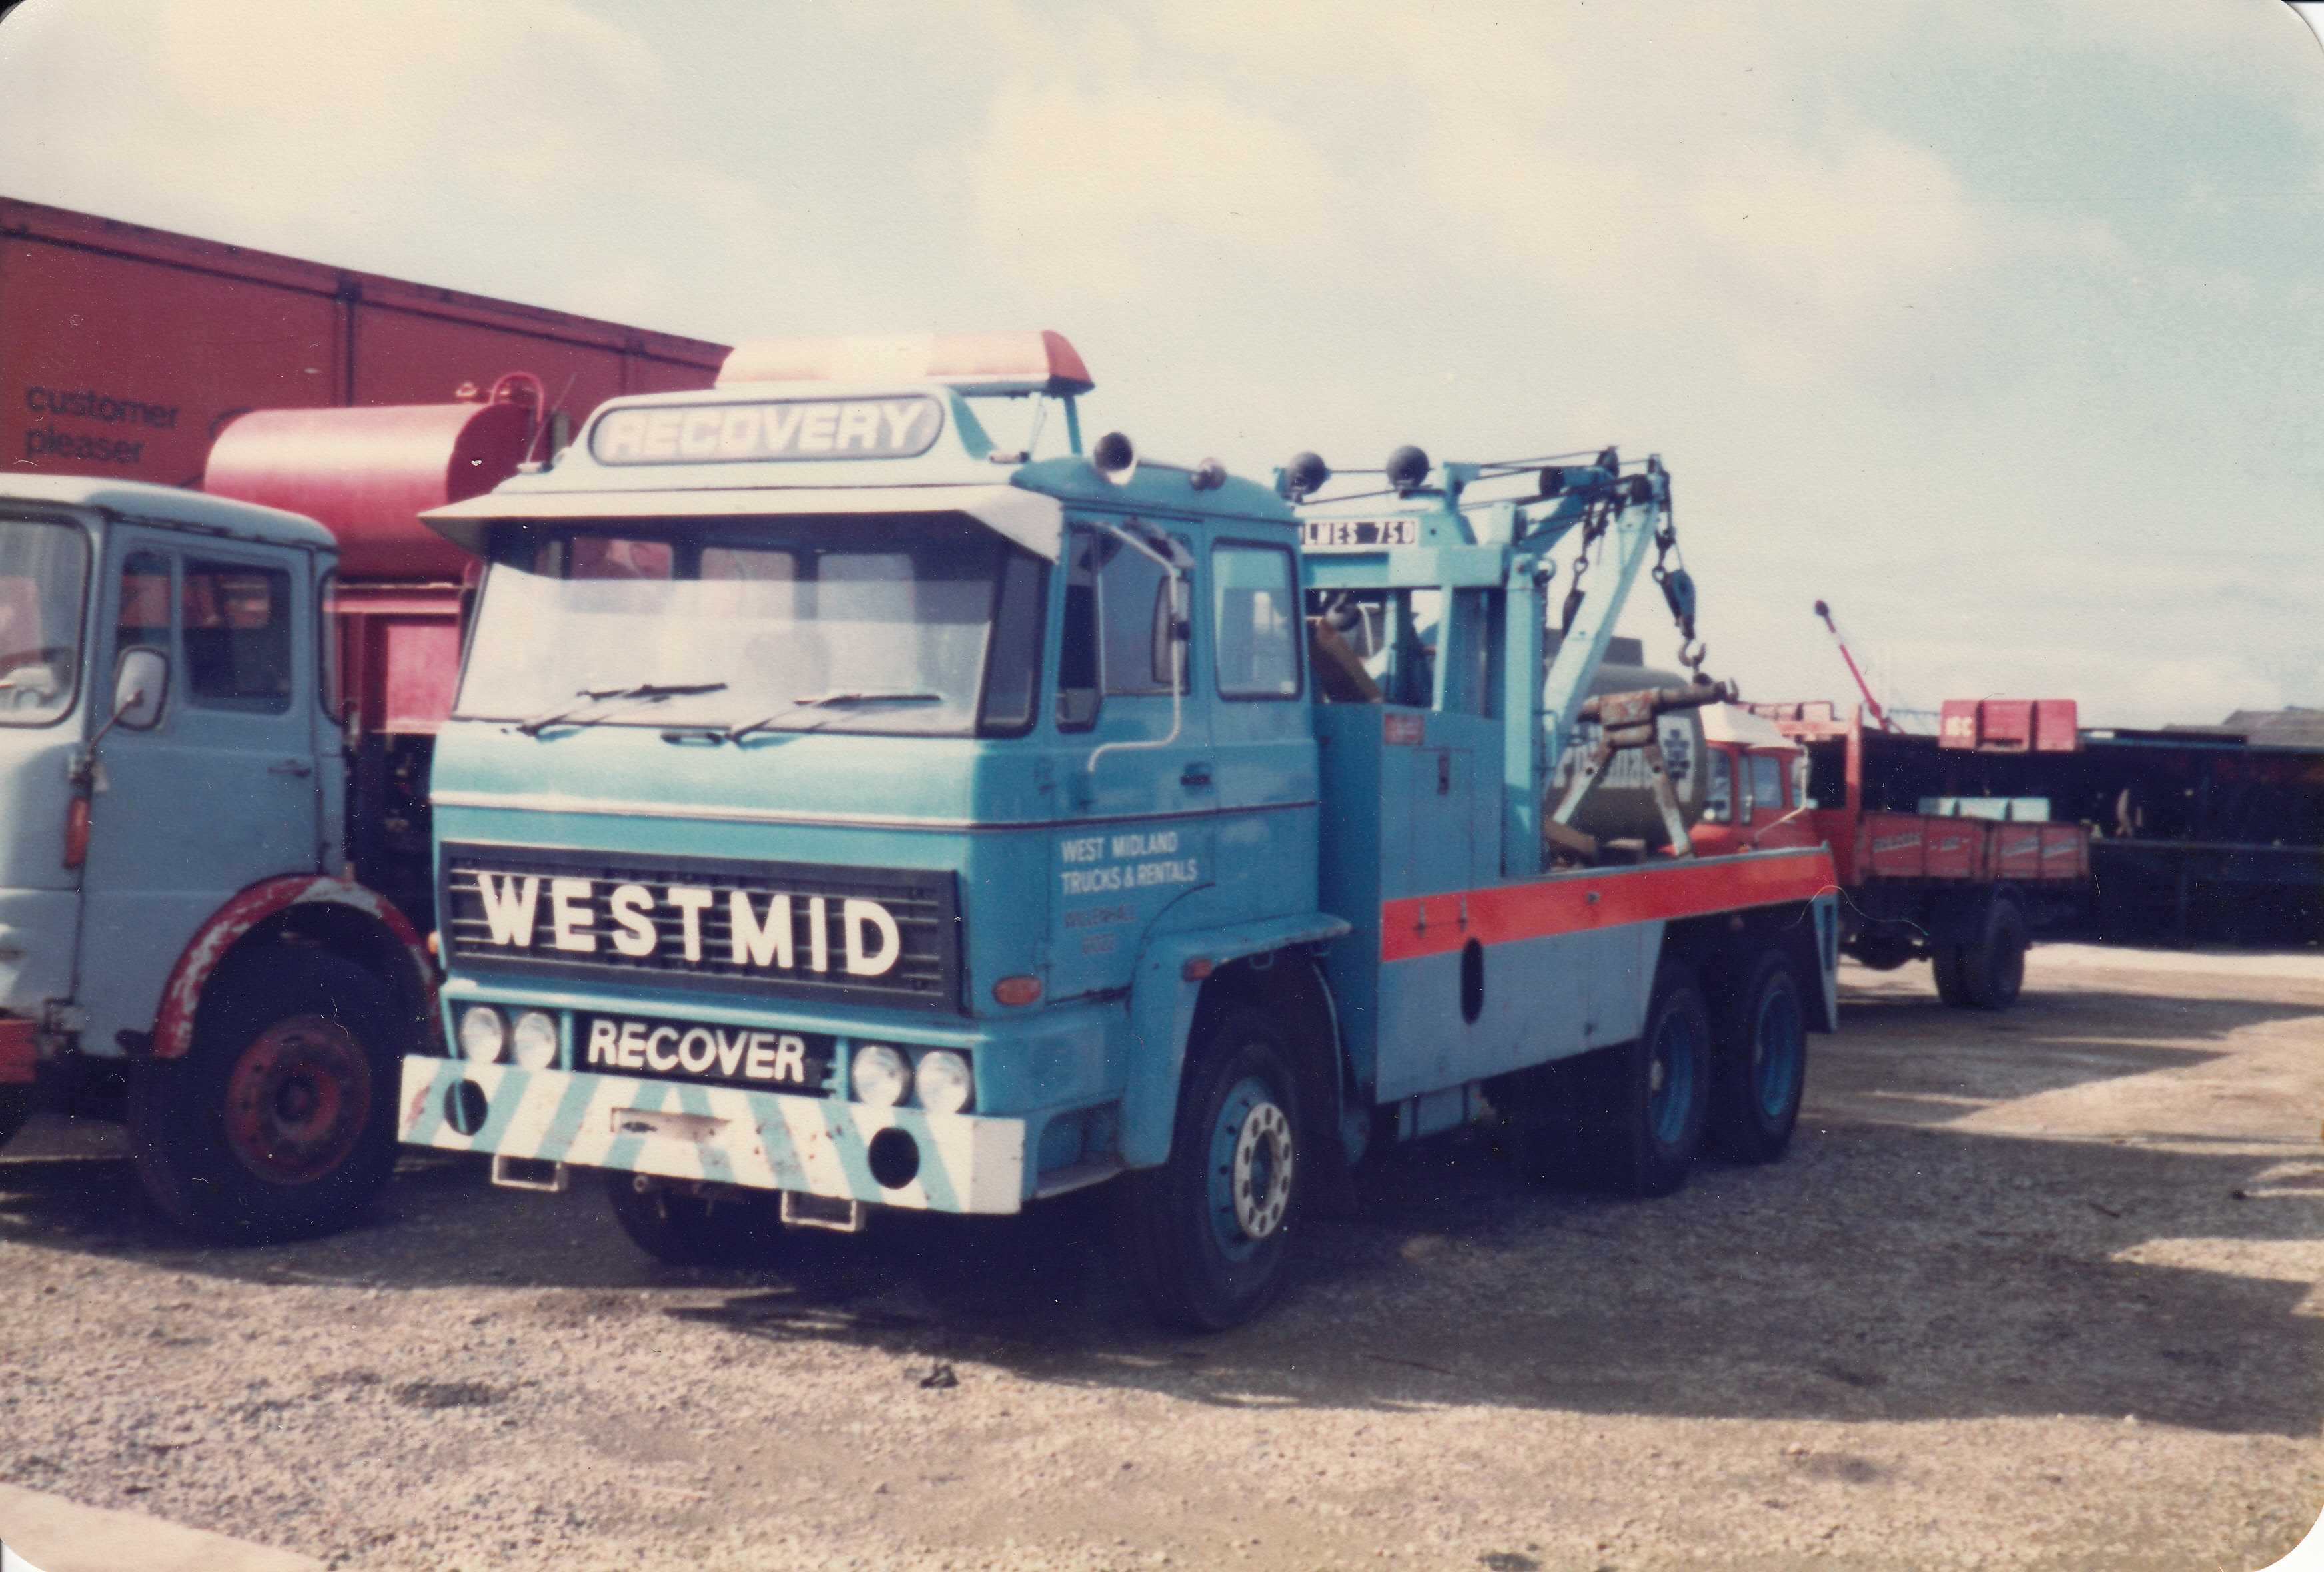 DAF recovery truck.